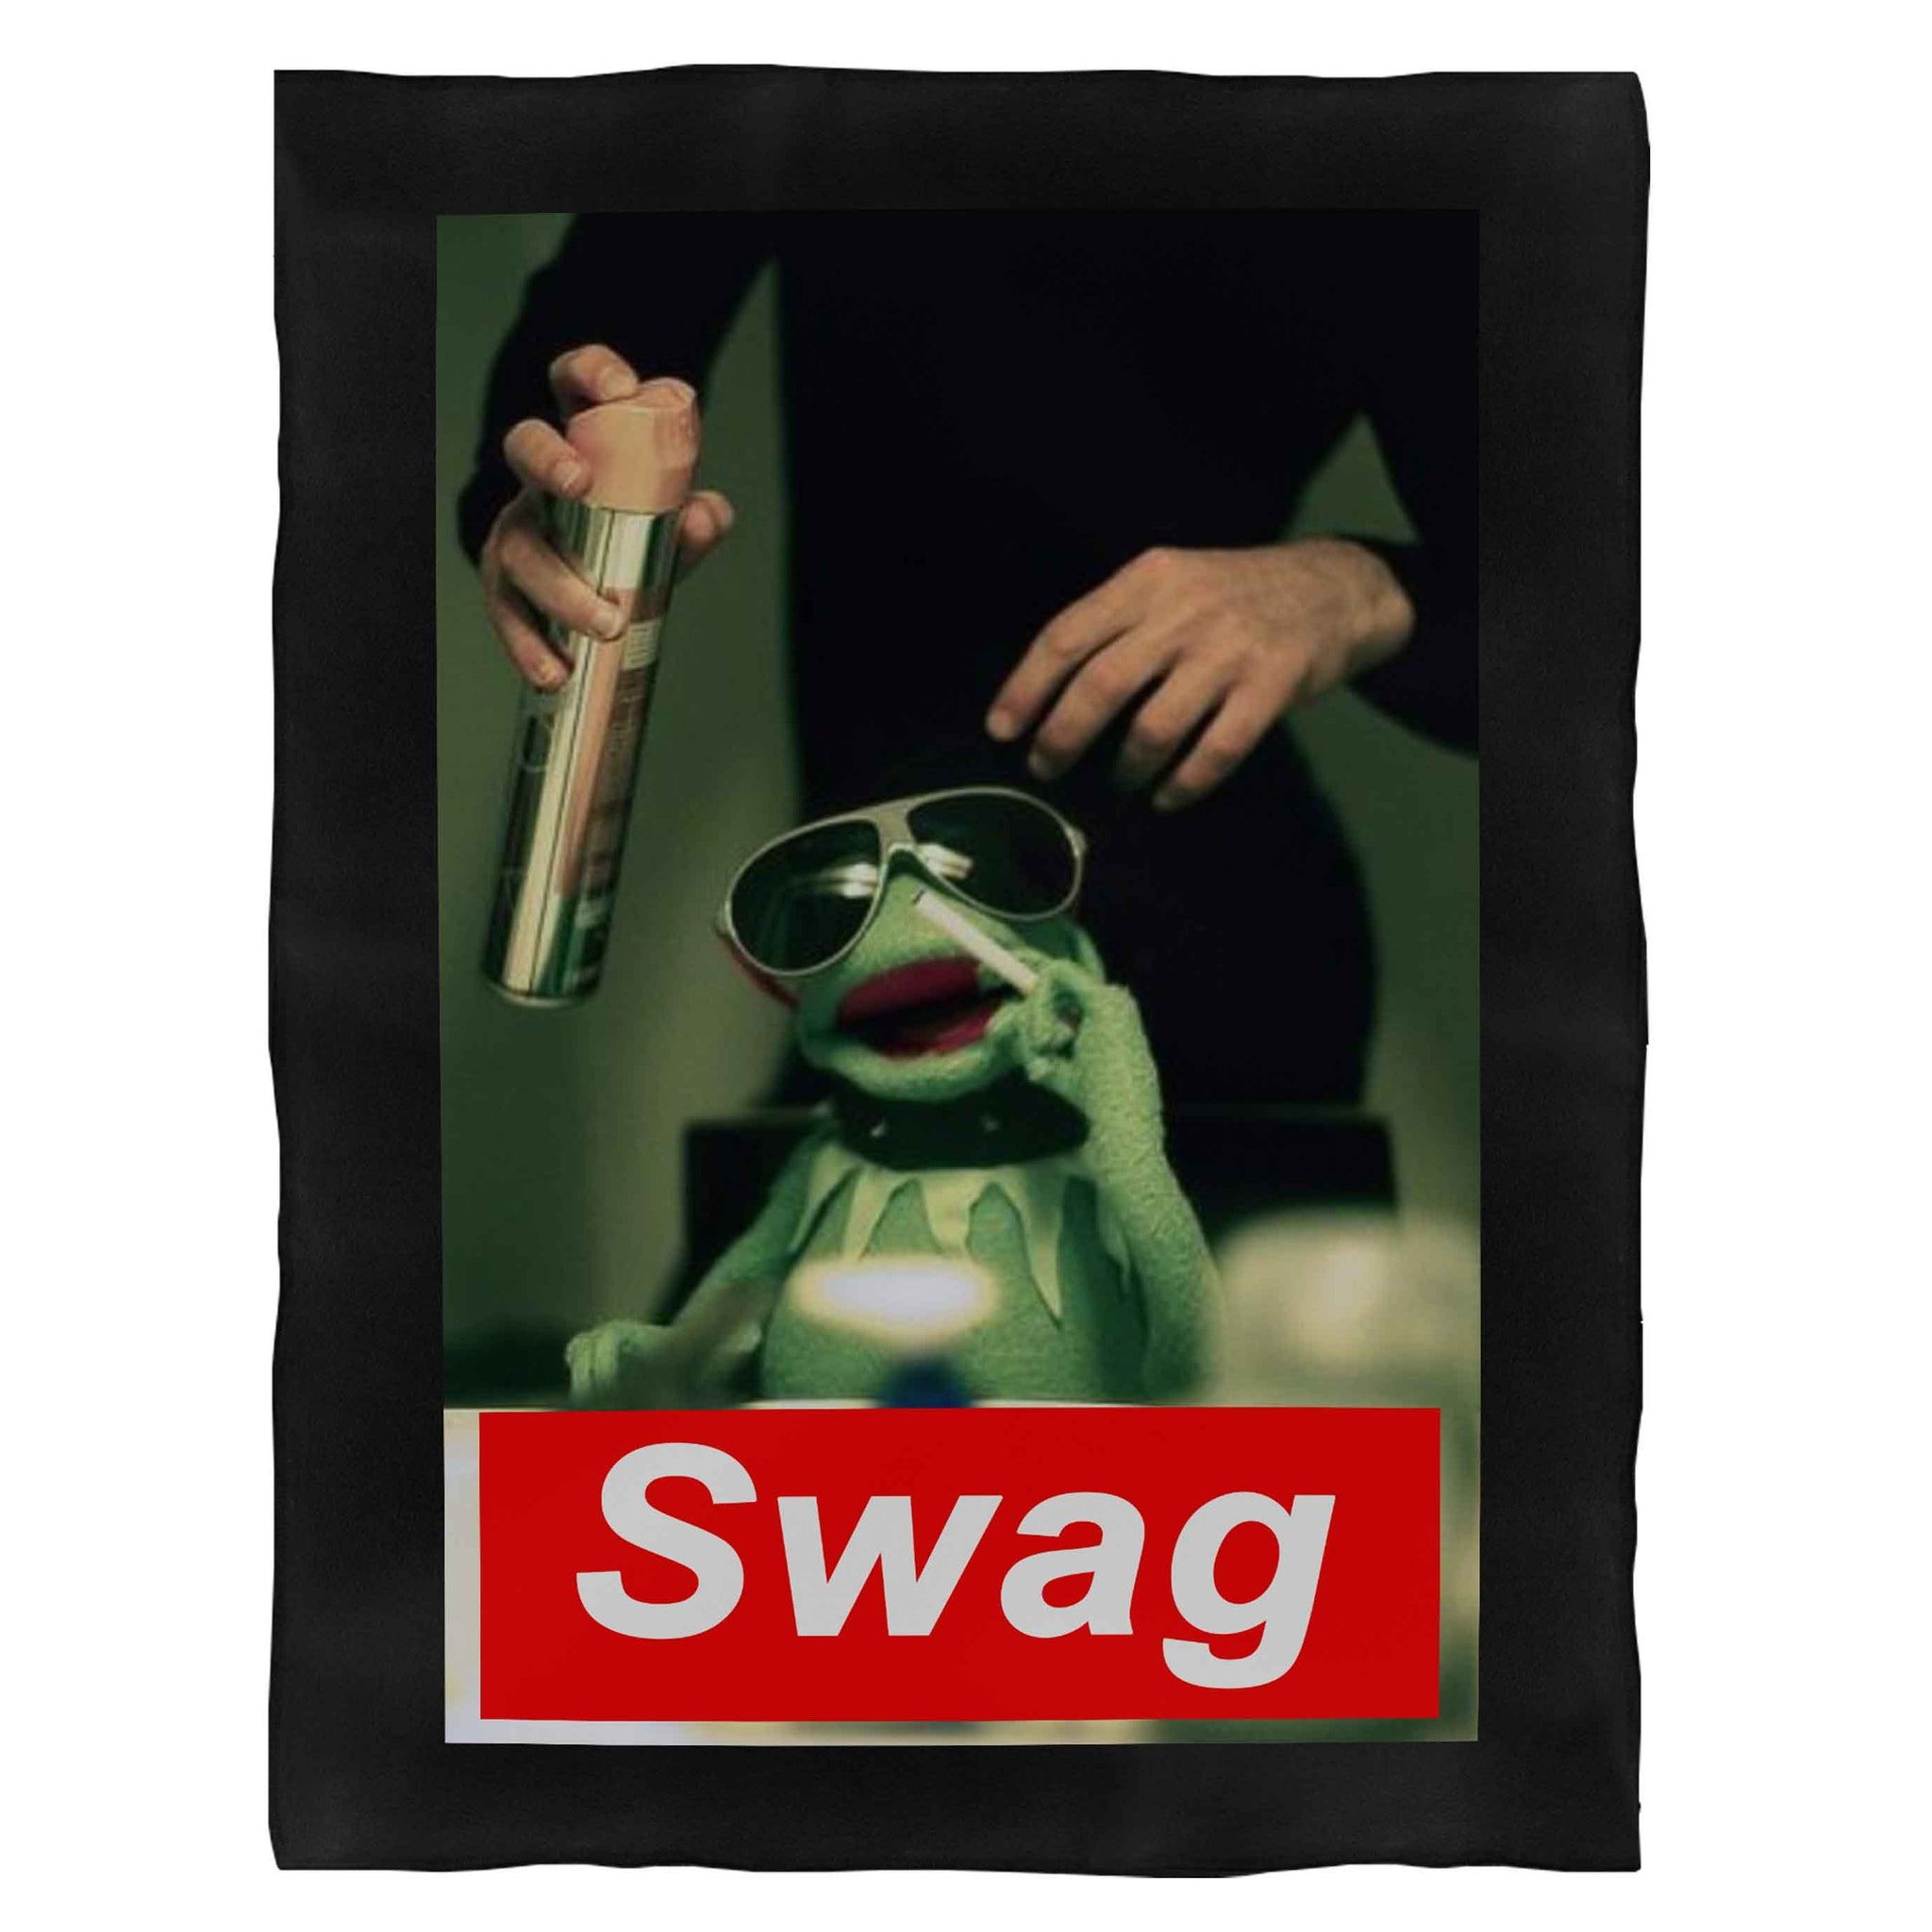 Swag Dope Boys Night Out Cocaine Cocaine Blow Scarface Pablo Funny Fleece Blanket